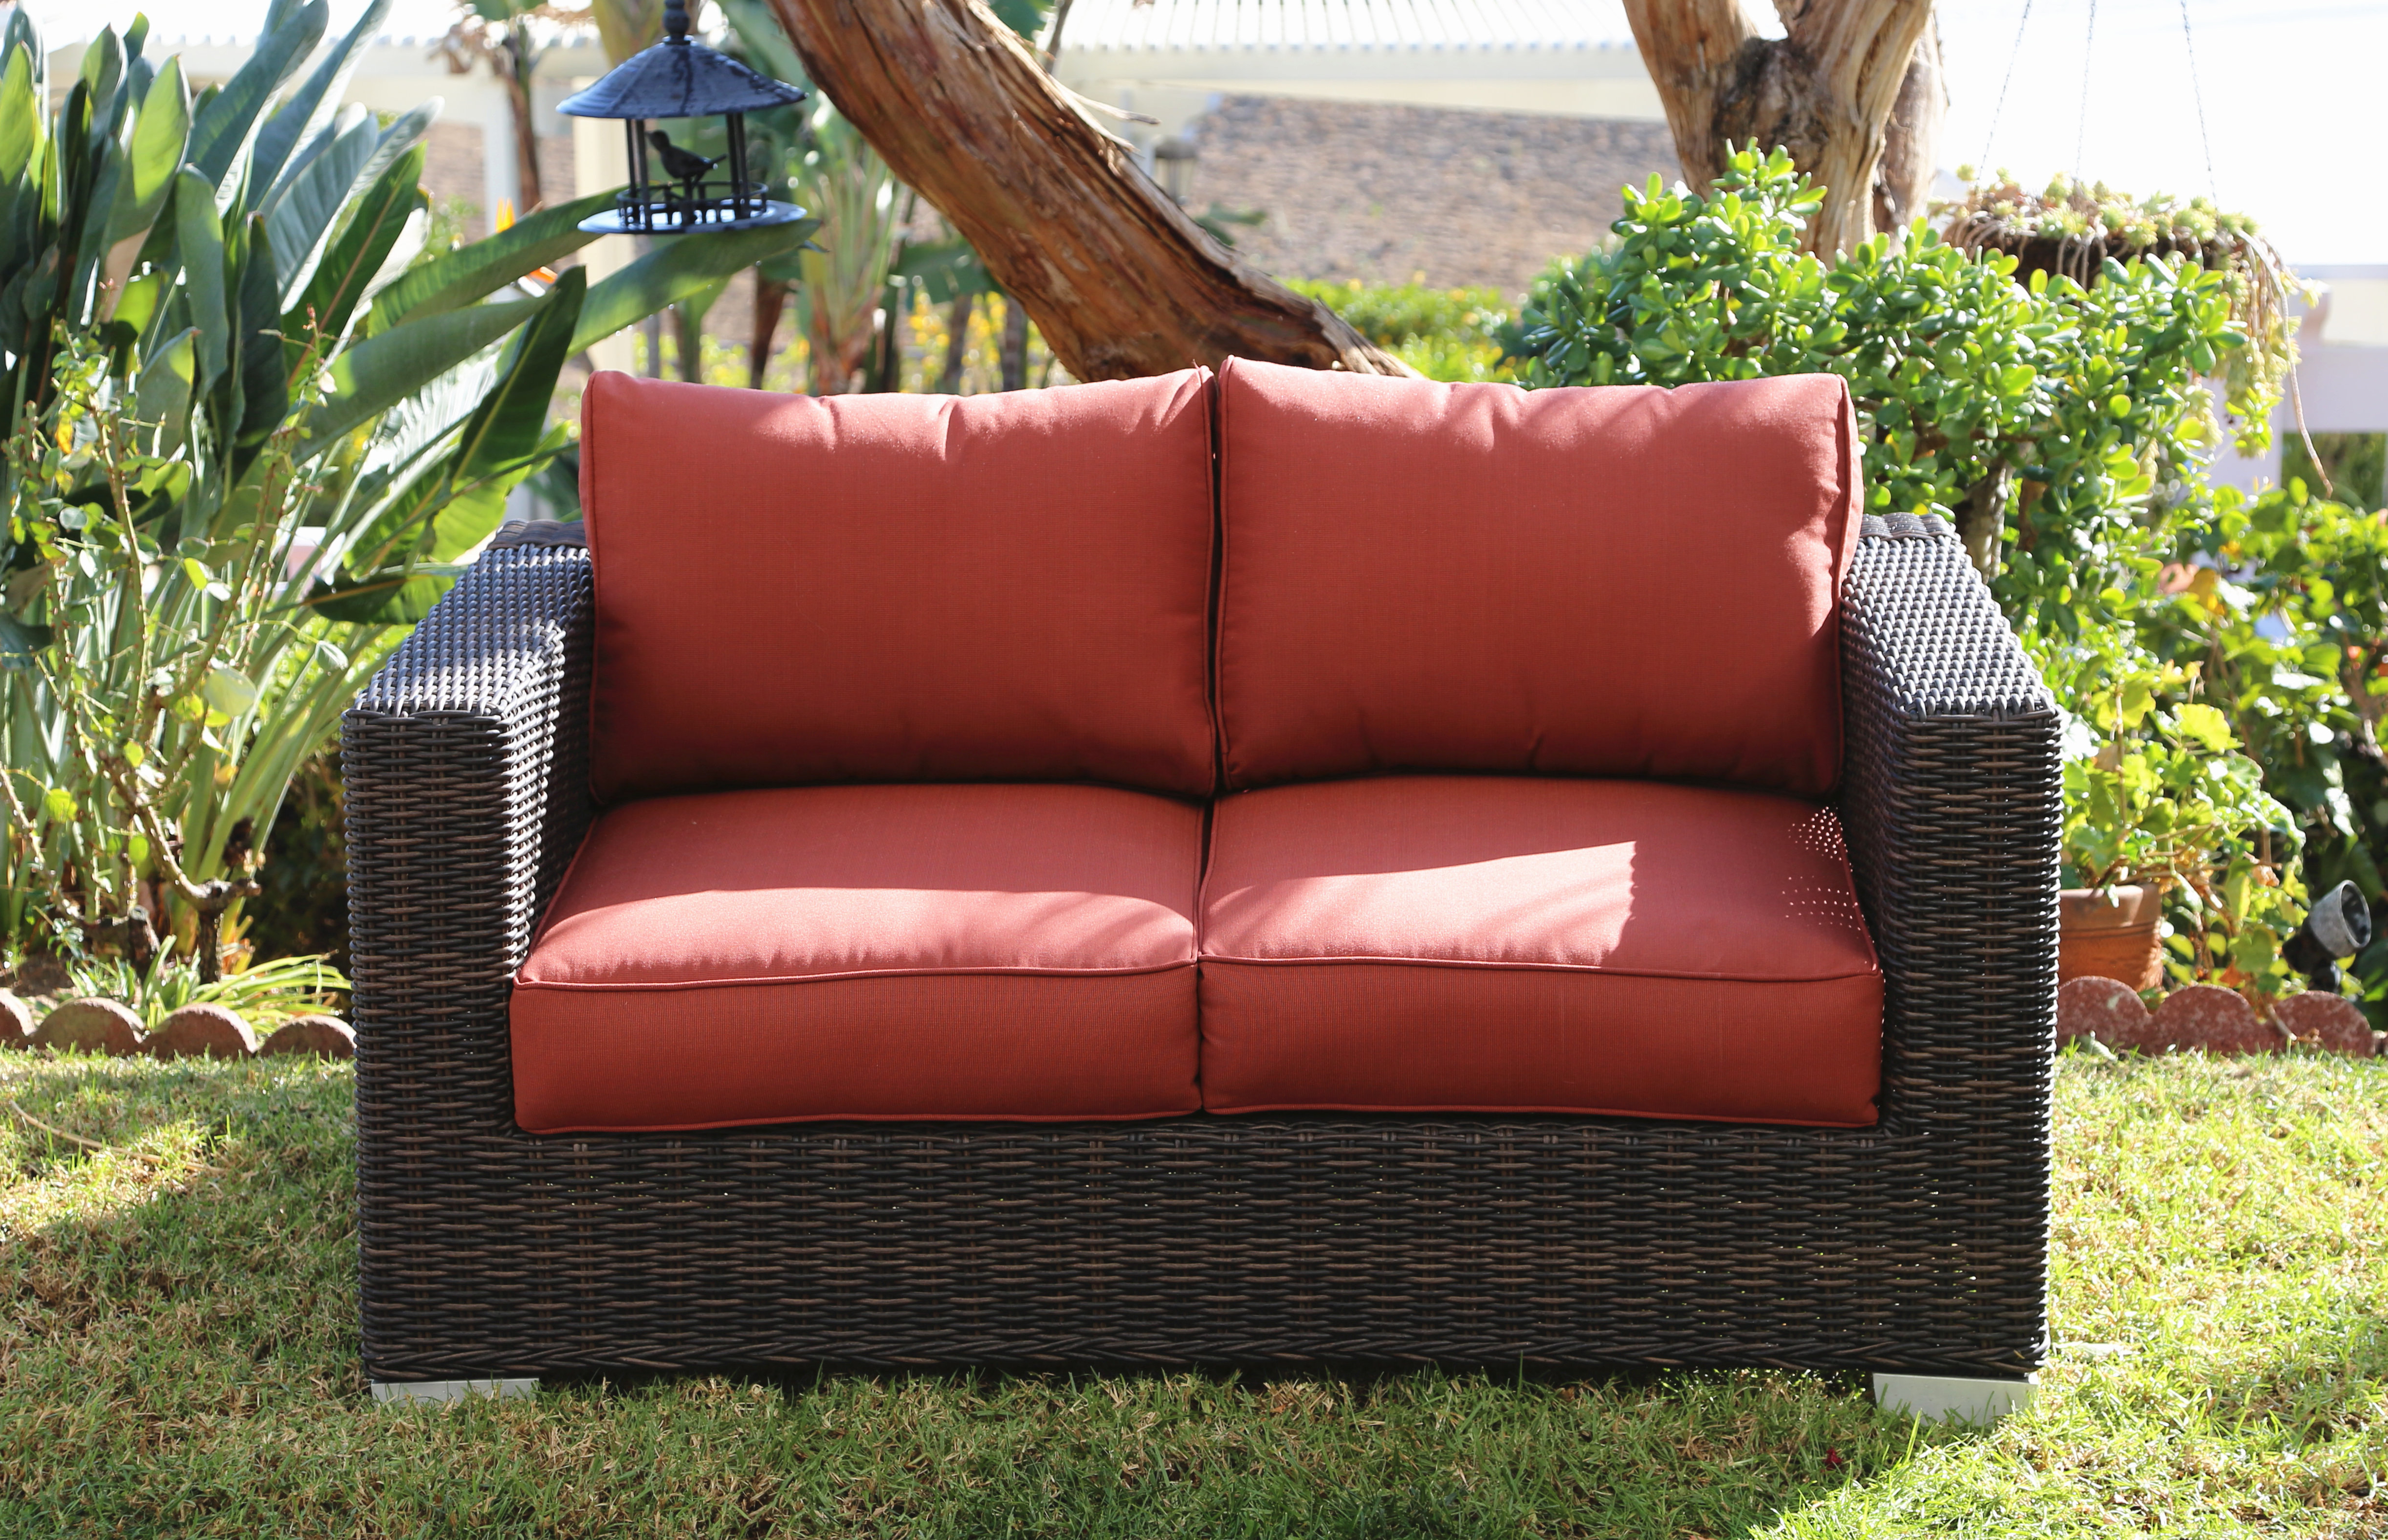 Vardin Loveseats With Cushions With Best And Newest Fults Loveseat With Cushion (View 4 of 20)